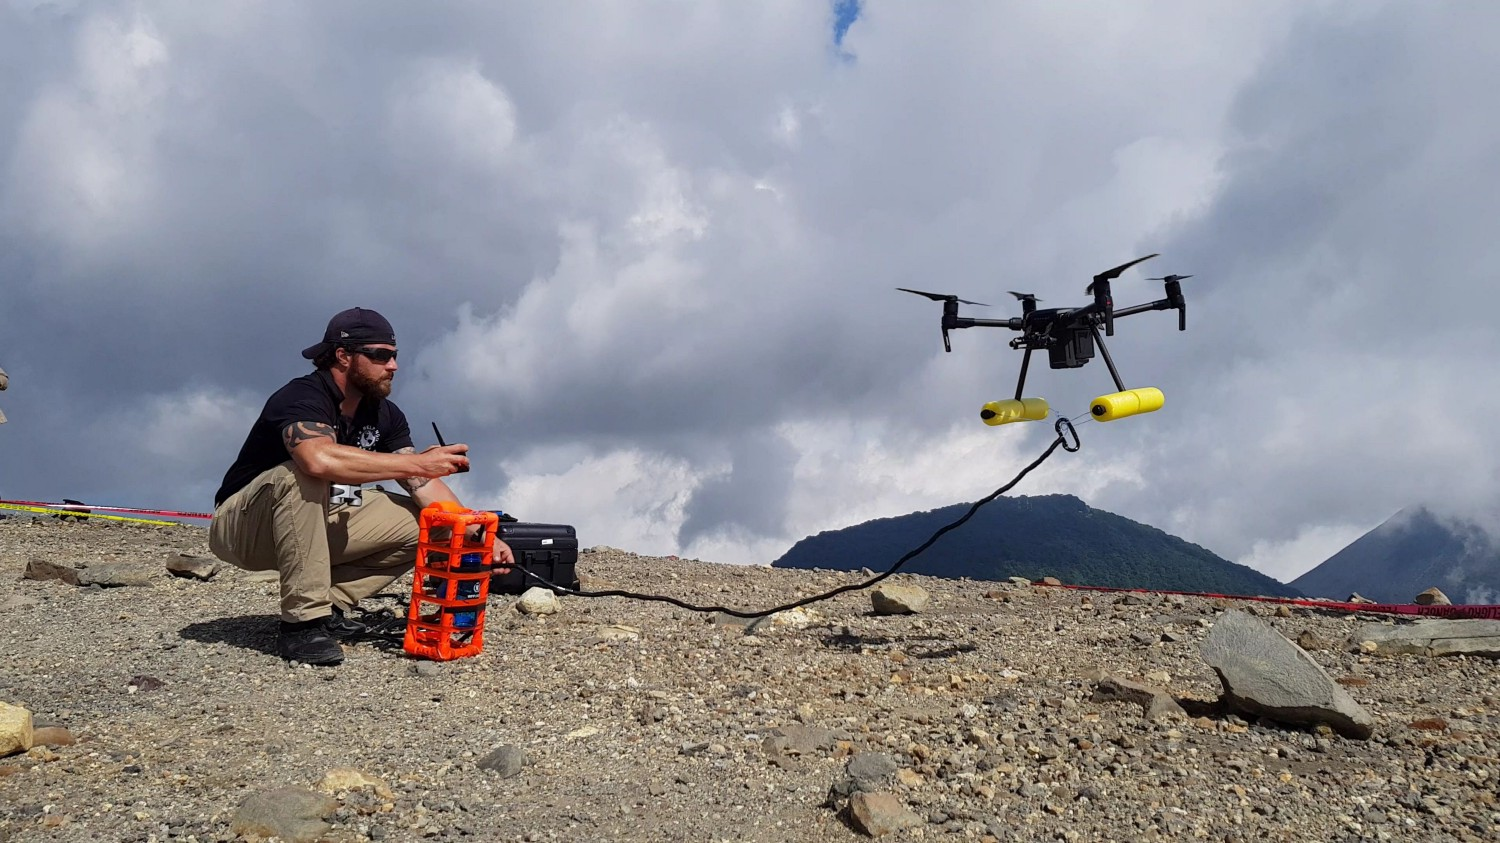 Expert on mission Clayton Covel readies a drone to collect a water sample from the crater of Santa Ana. Photo: WFP/Katarzyna Chojnacka